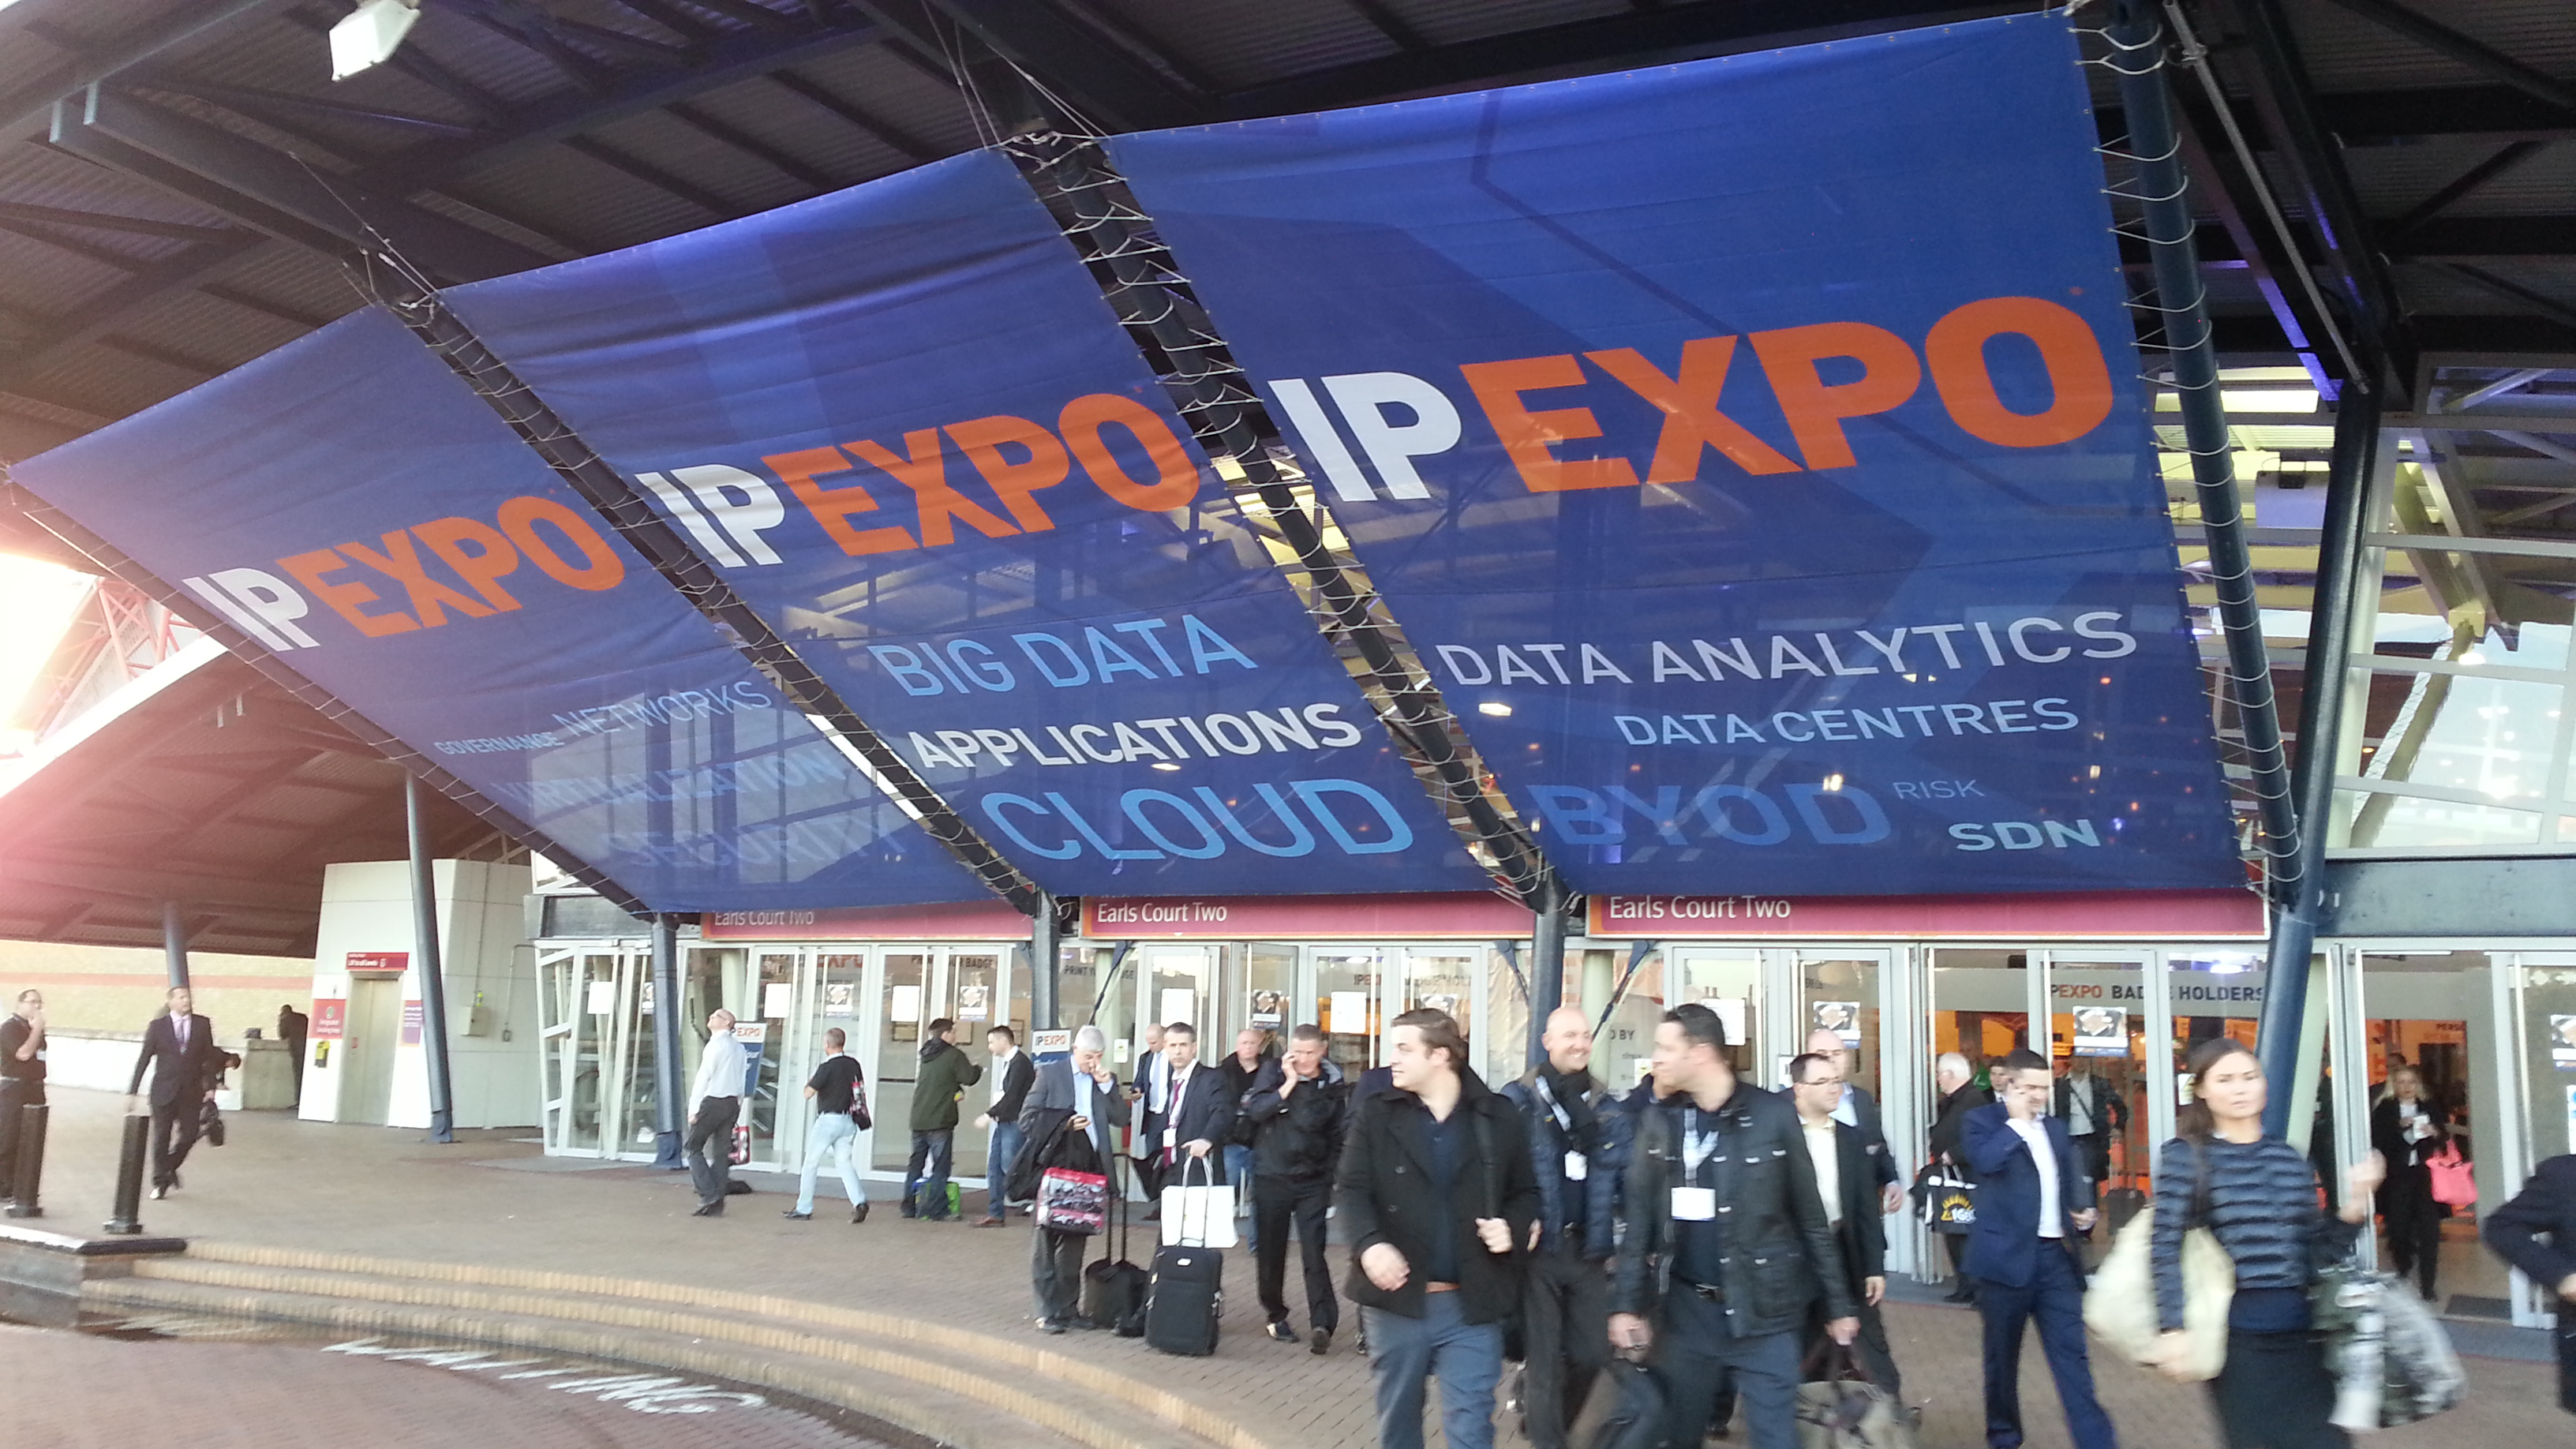 IP EXPO 2013 London earls court 2